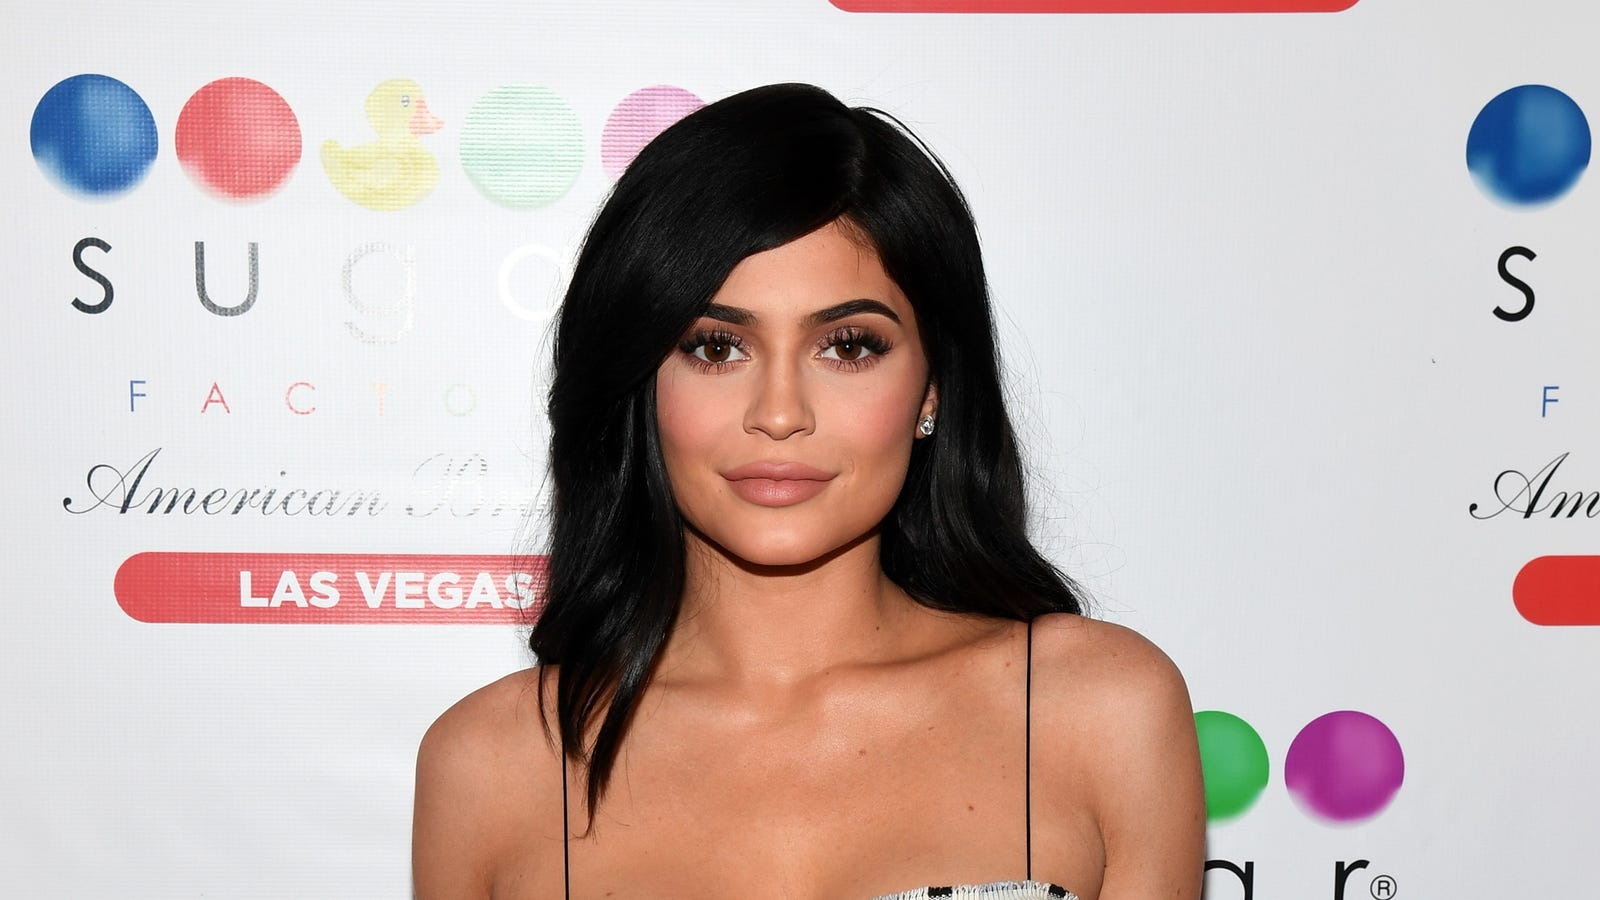 jcbazpzt4kfil4ccugtu - You Guys Are Really Pissed About Kylie Jenner's Nails, Huh